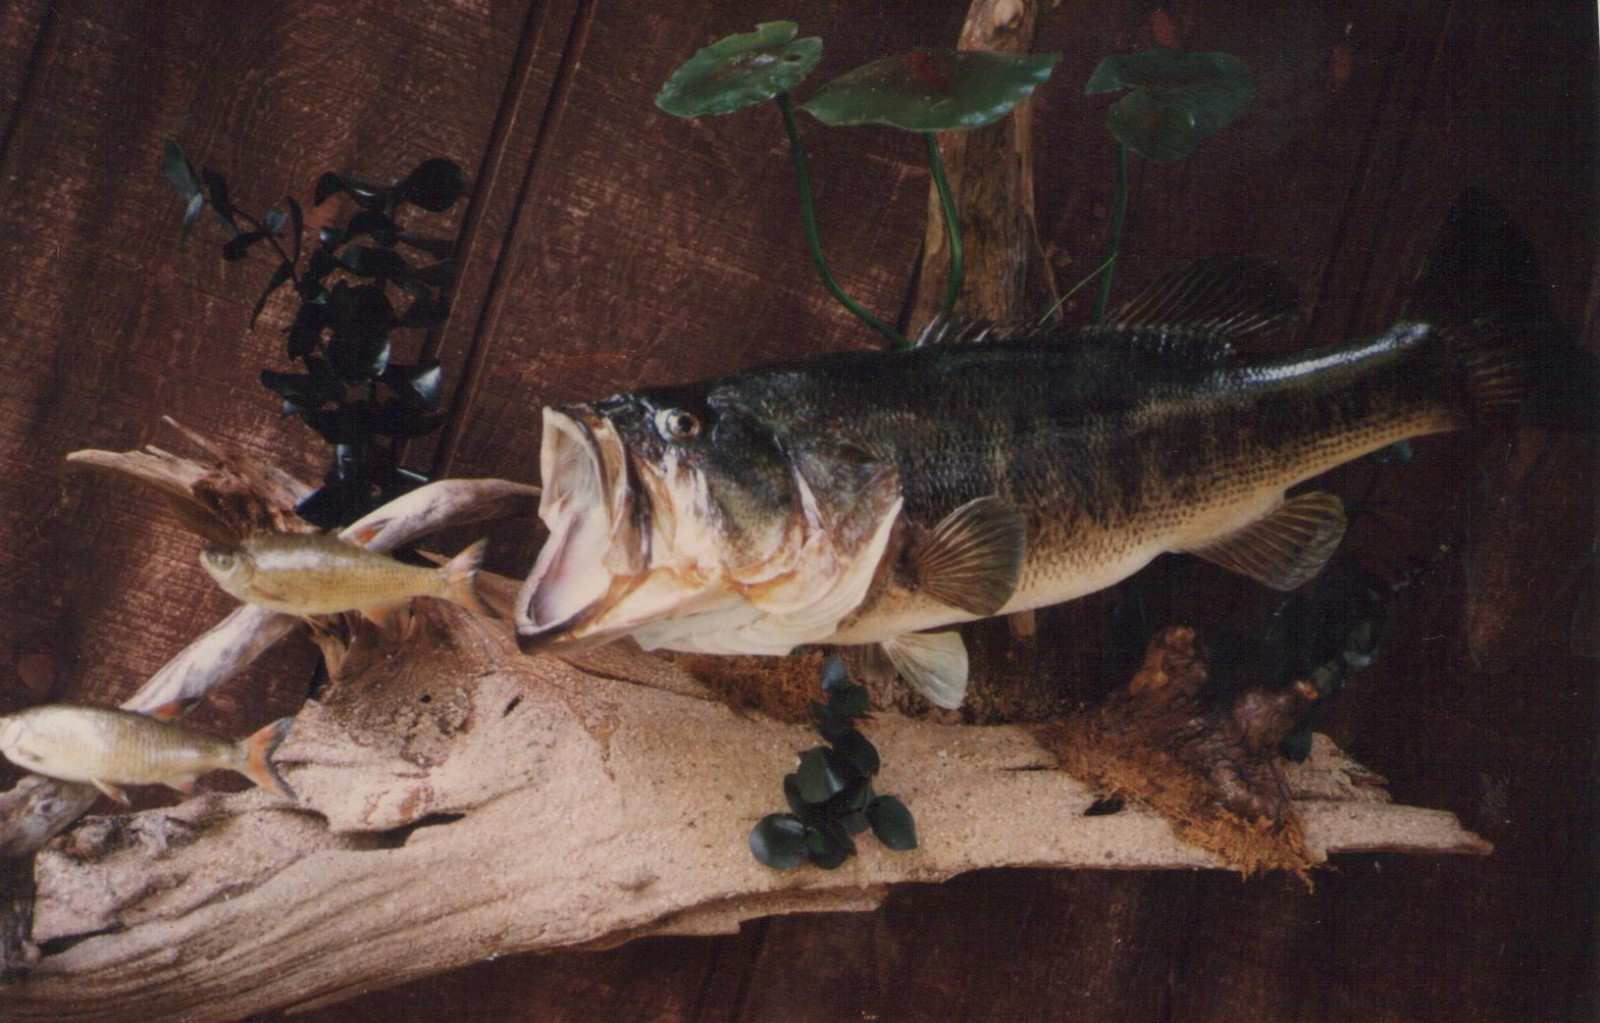 Fish taxidermy projects american wildlife studios for How to taxidermy a fish